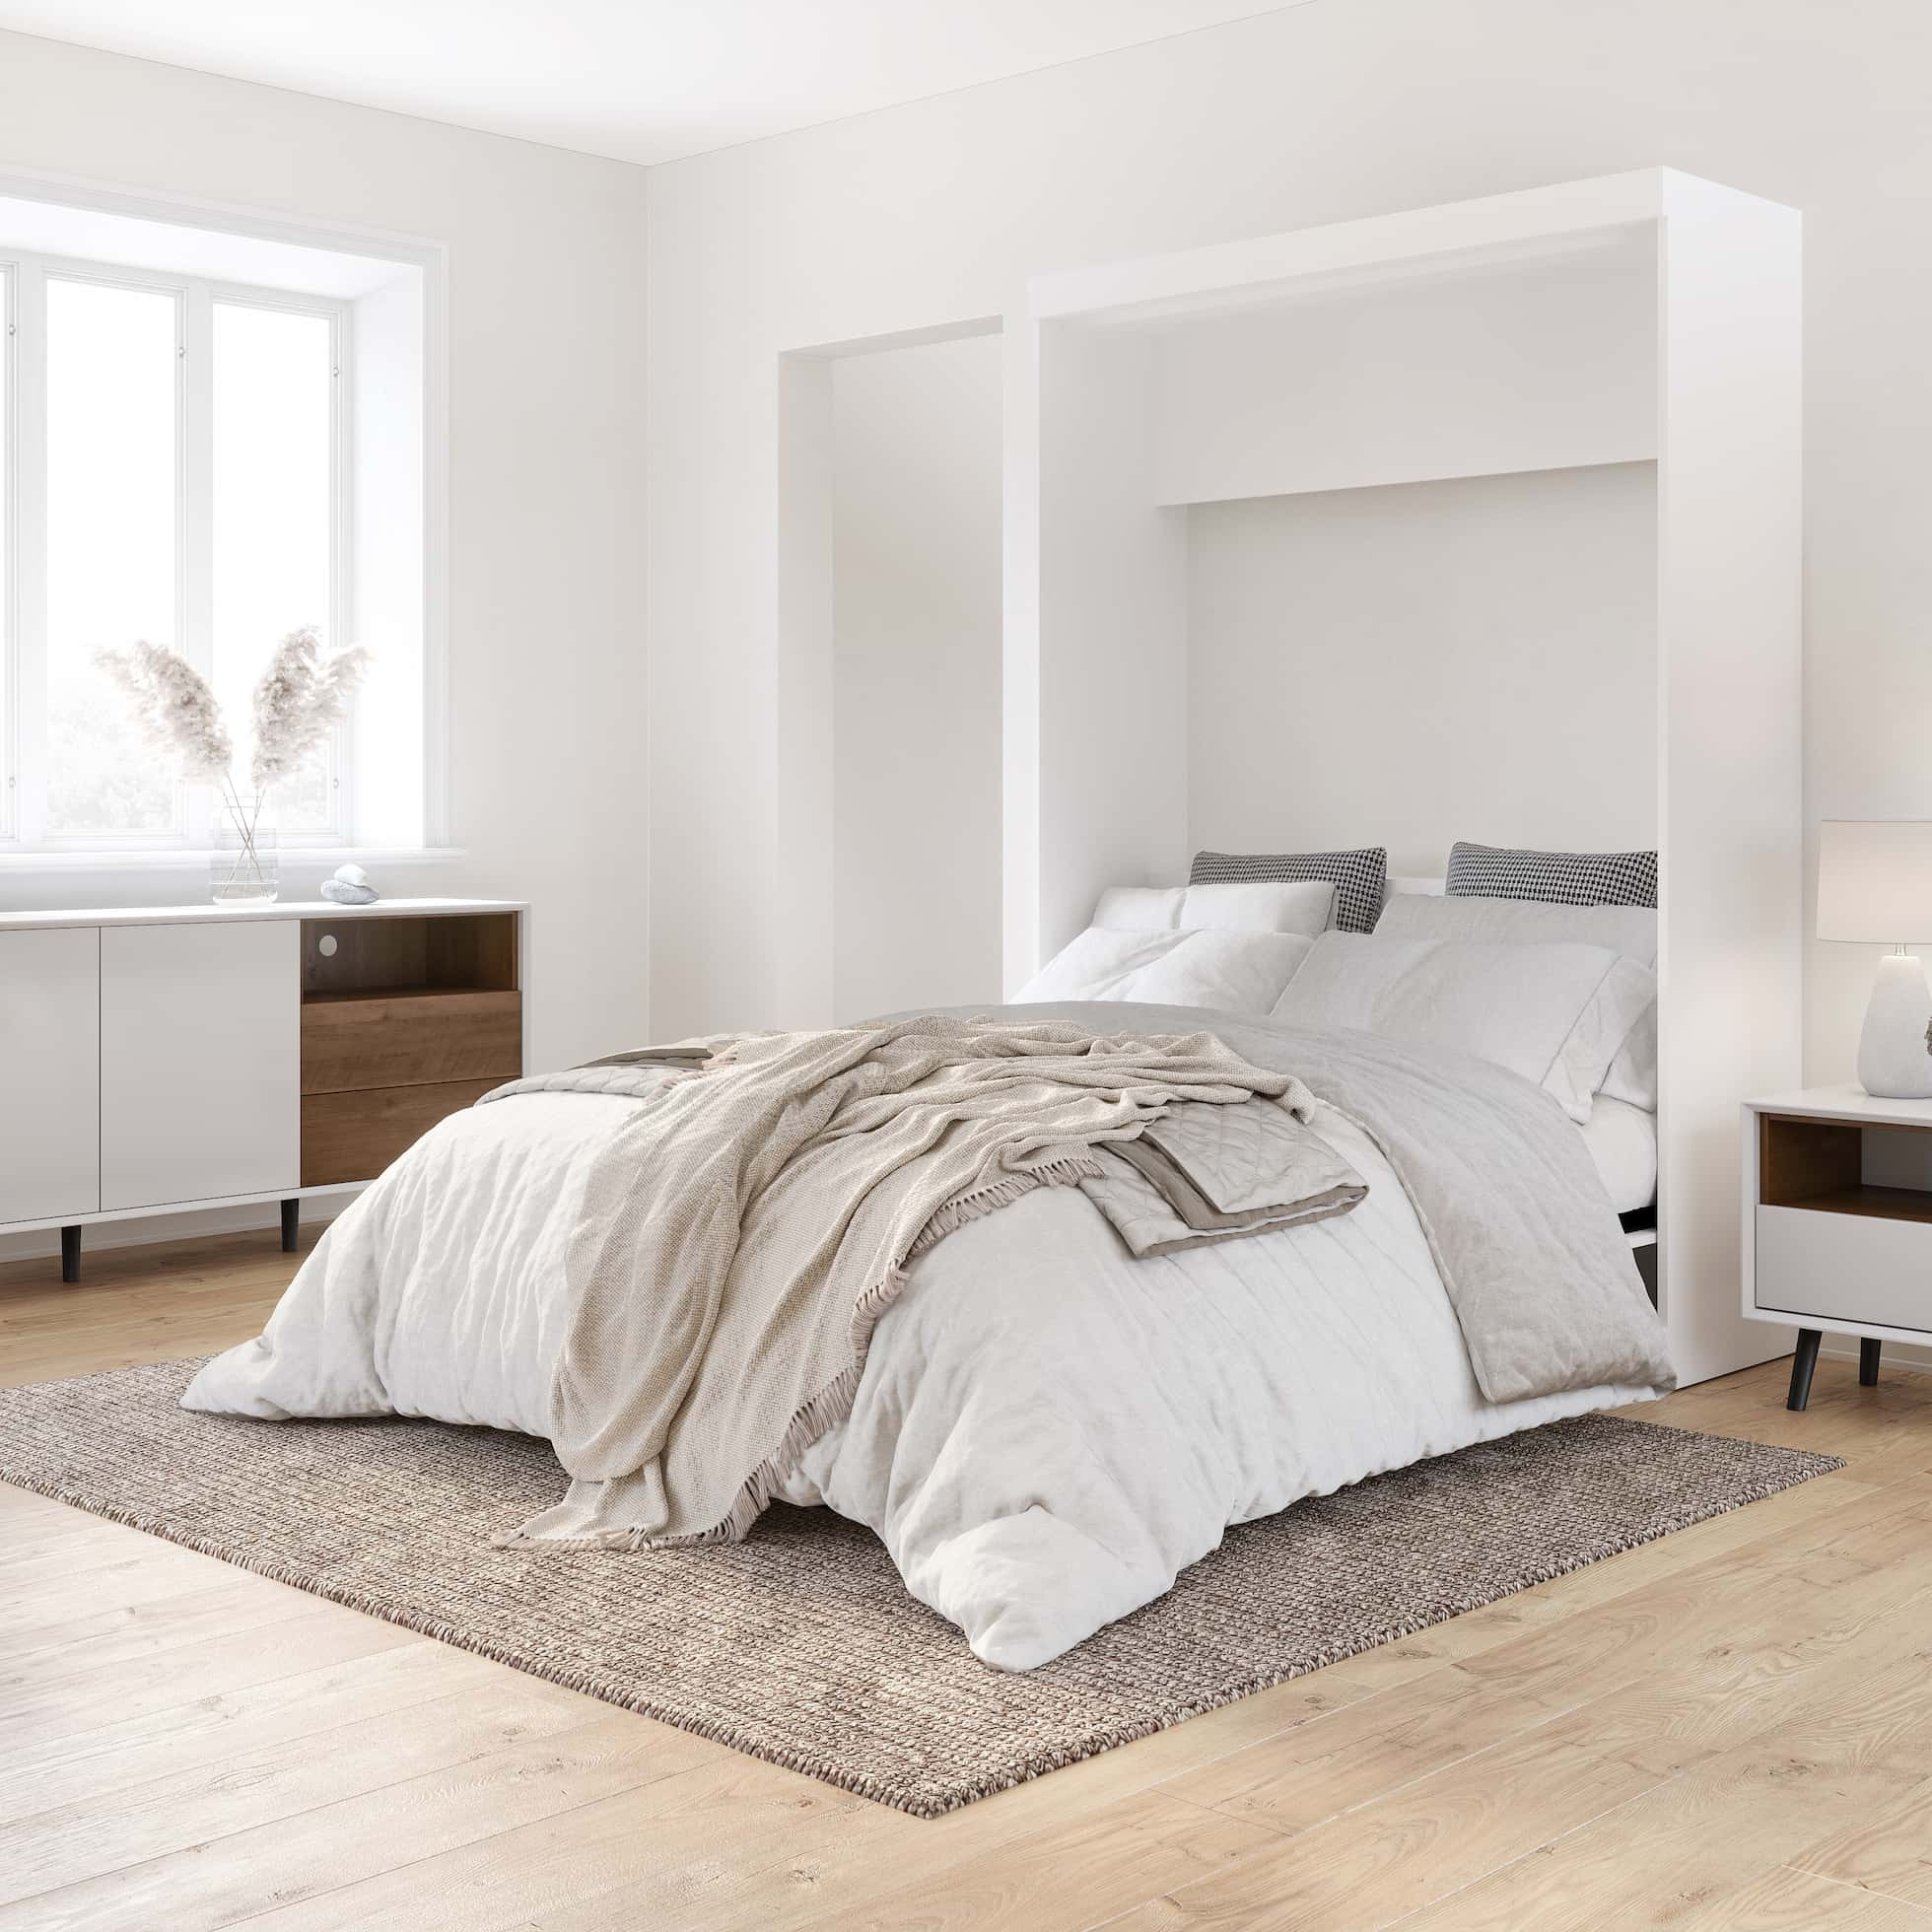 A White Esthetic for a Splendid Bedroom ー White Murphy Bed, Natural Light, and More